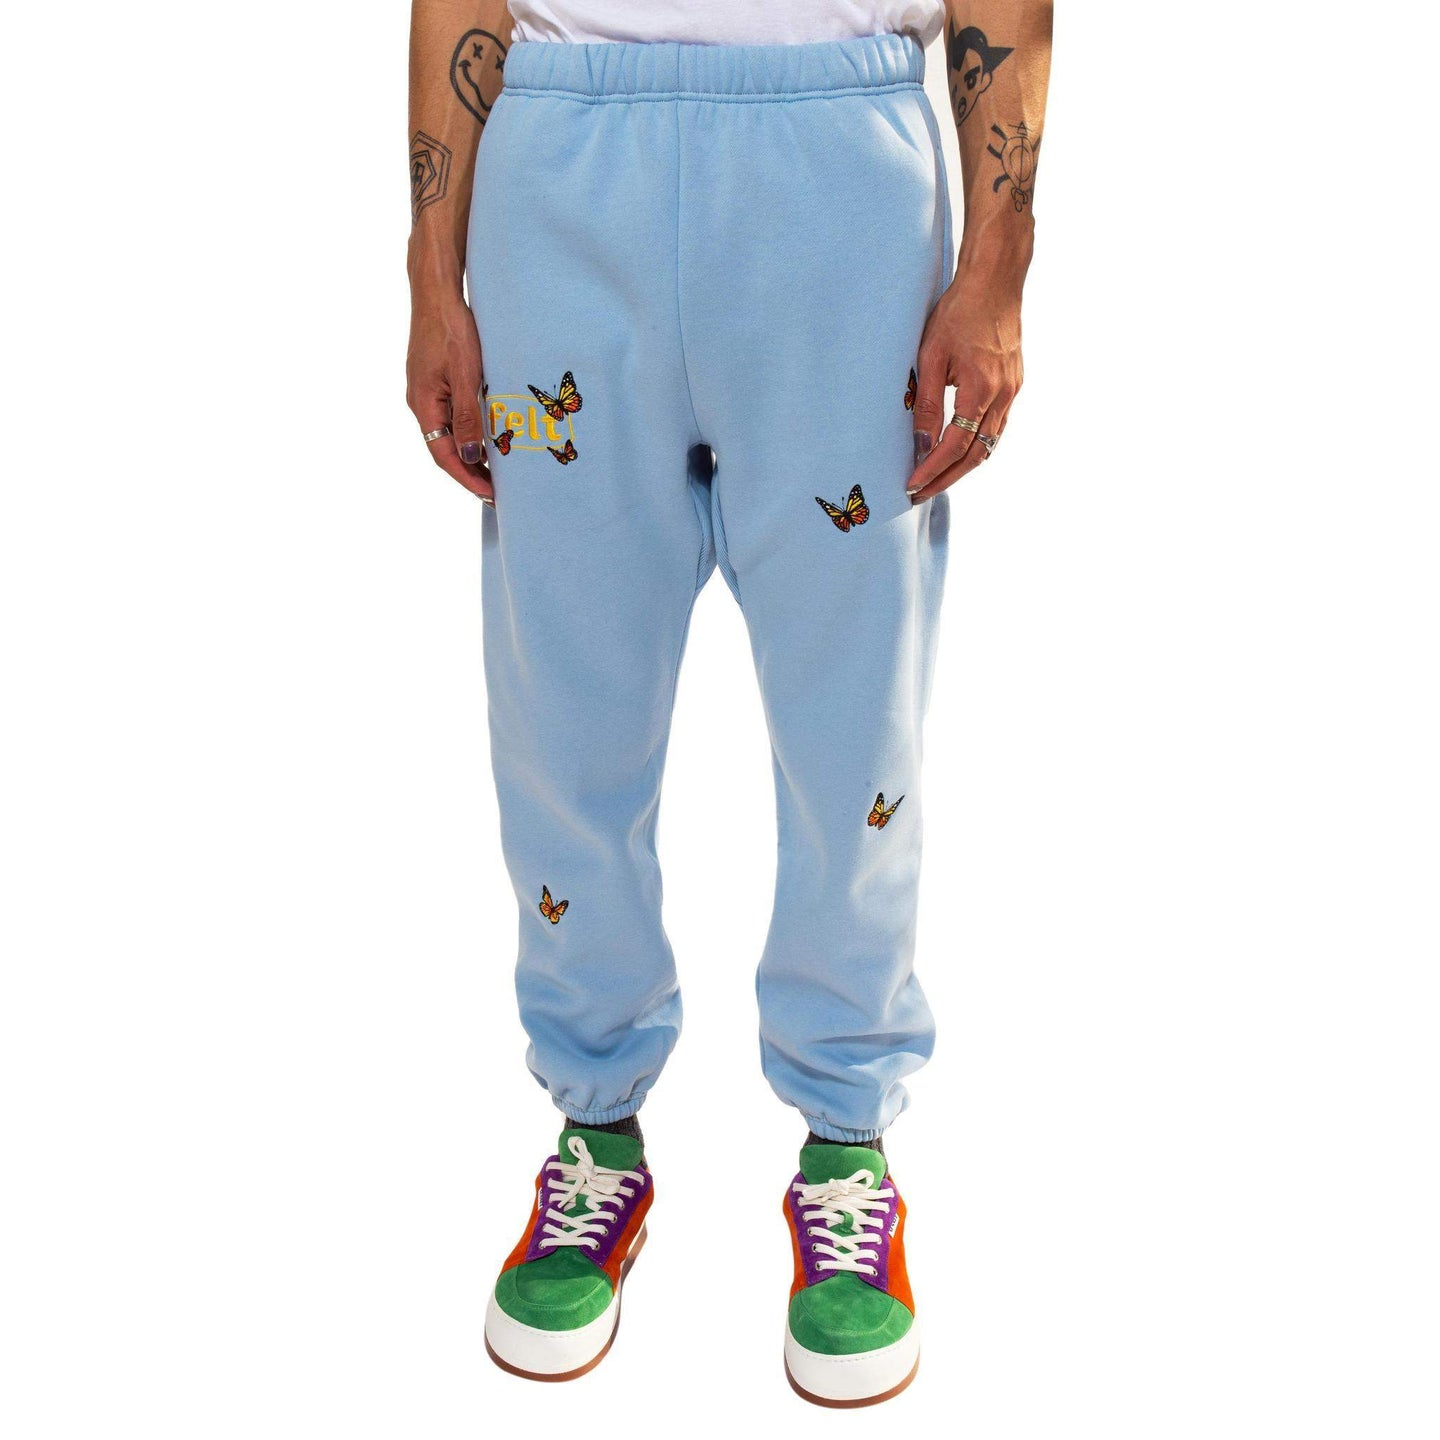 Butterfly Garden Sweatpants (Blue)